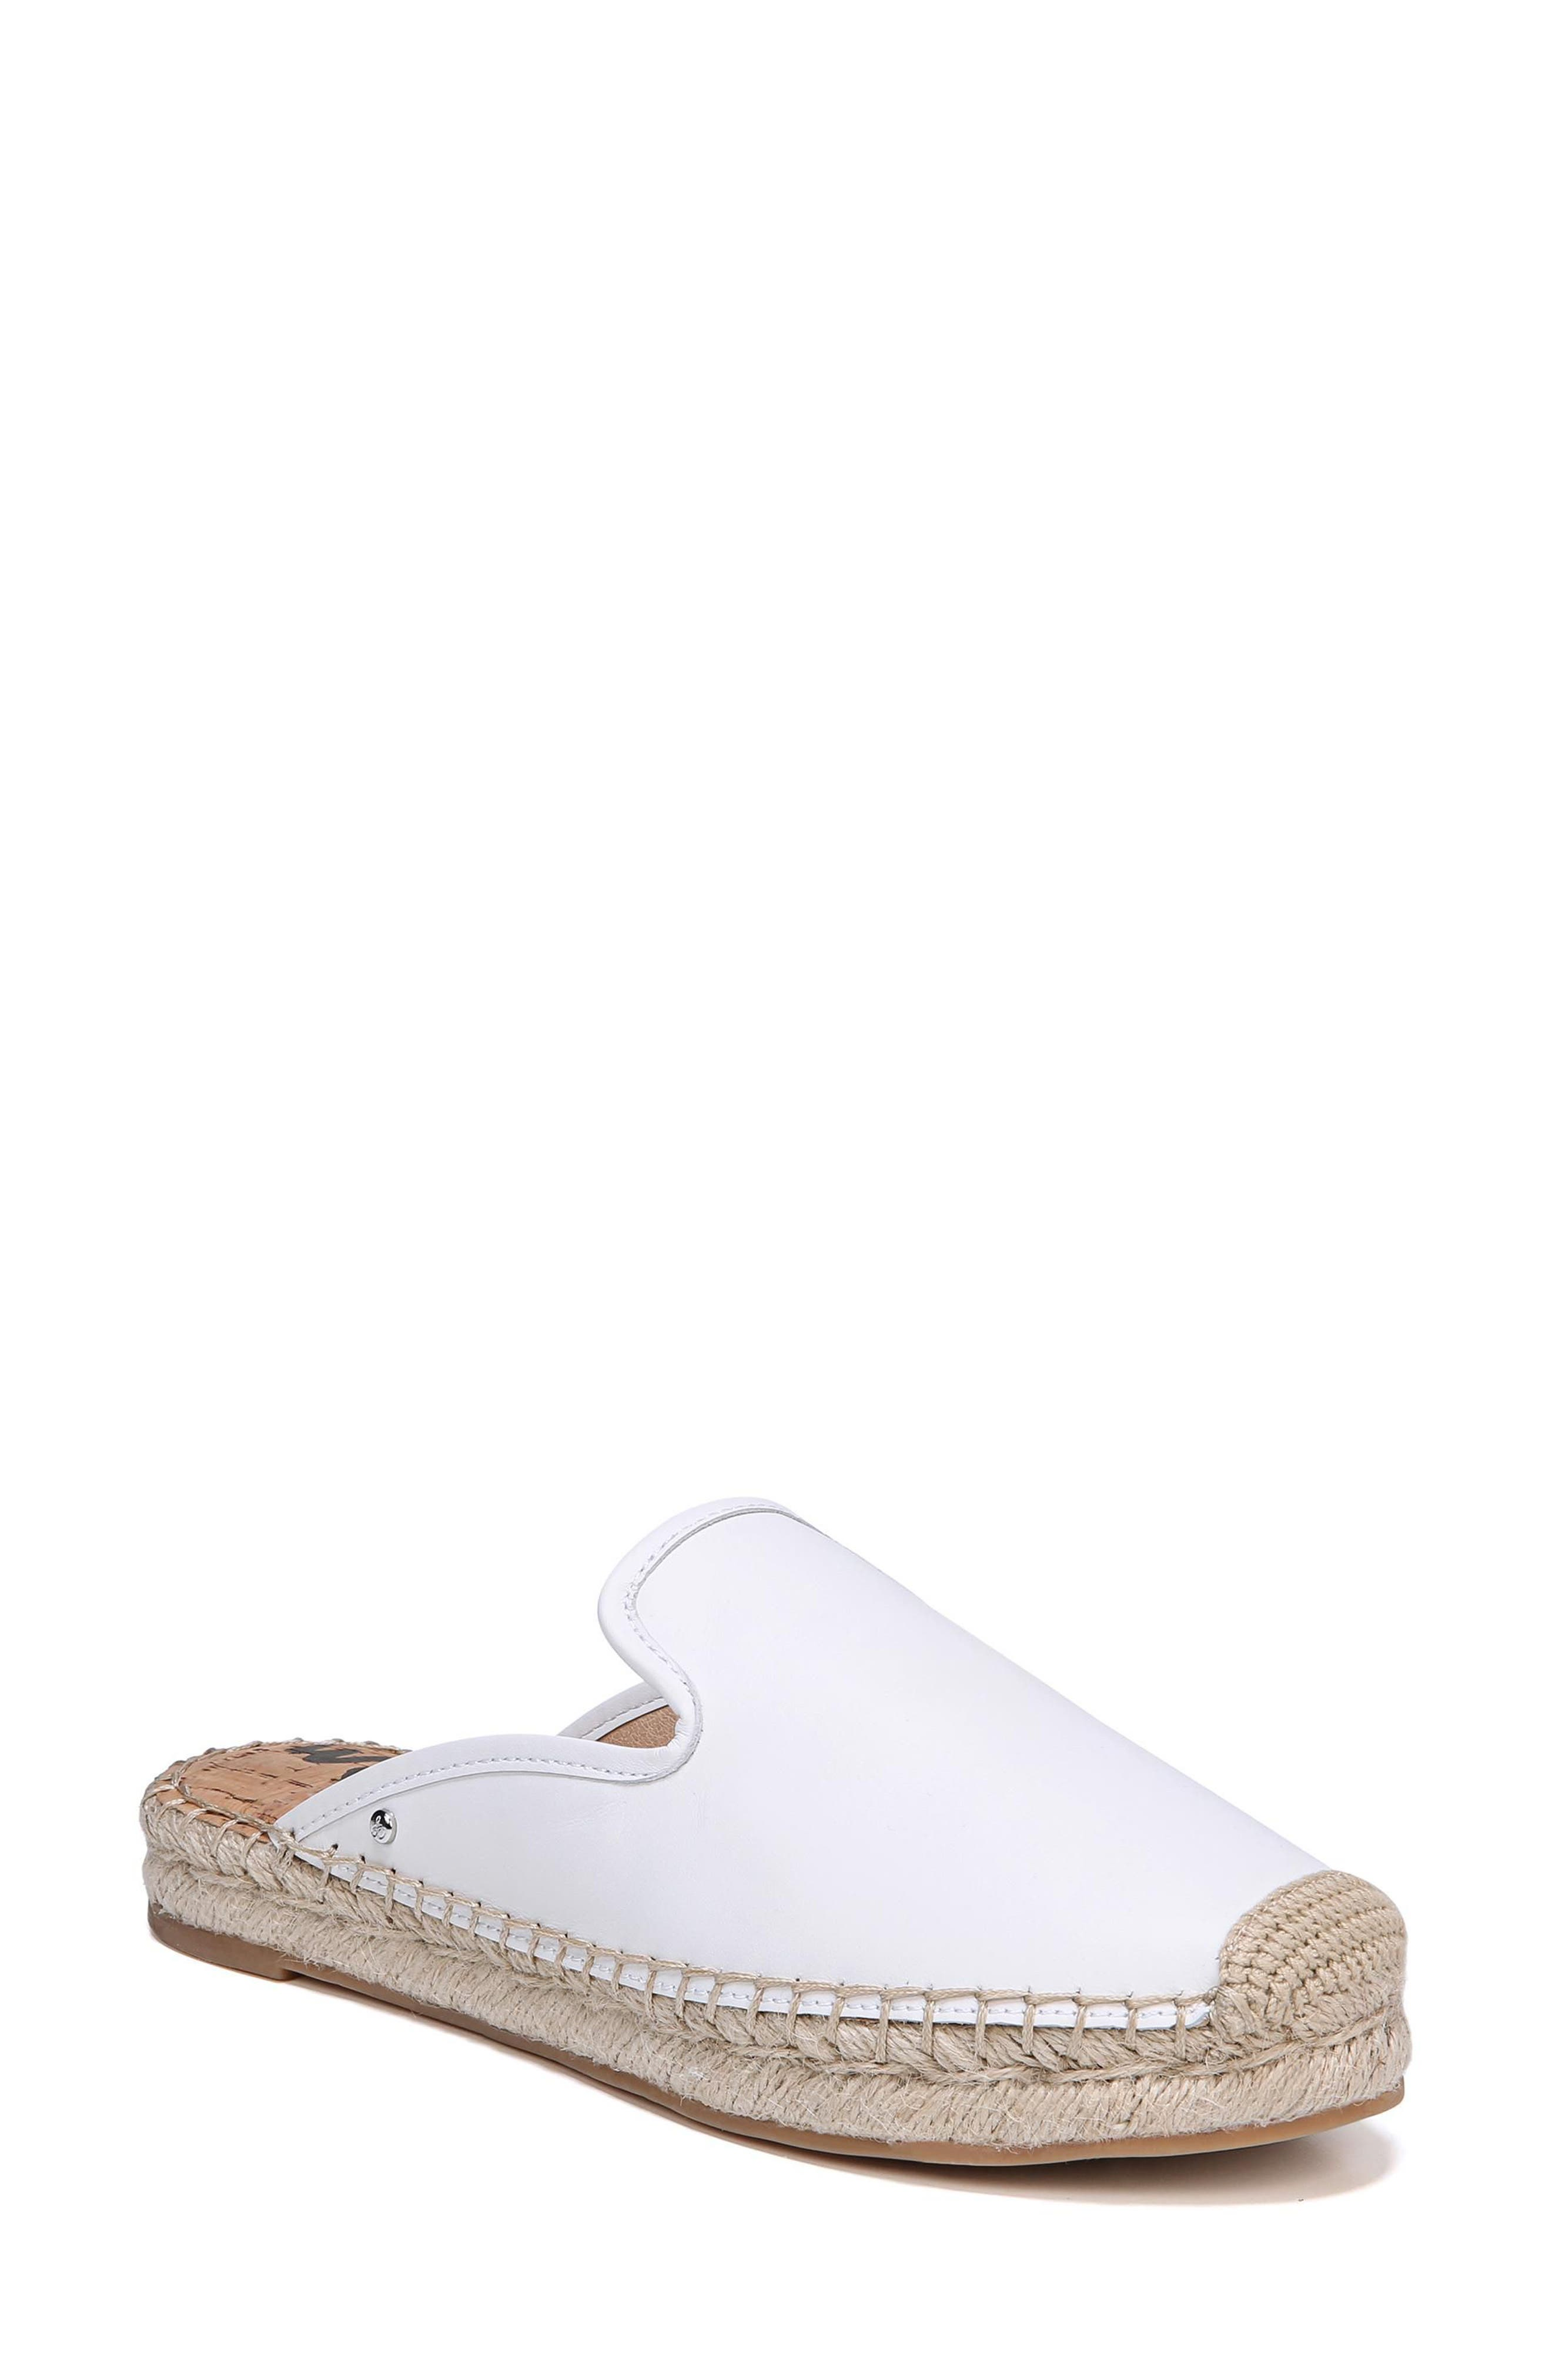 Kerry Espadrille Mule,                             Main thumbnail 1, color,                             Bright White Leather